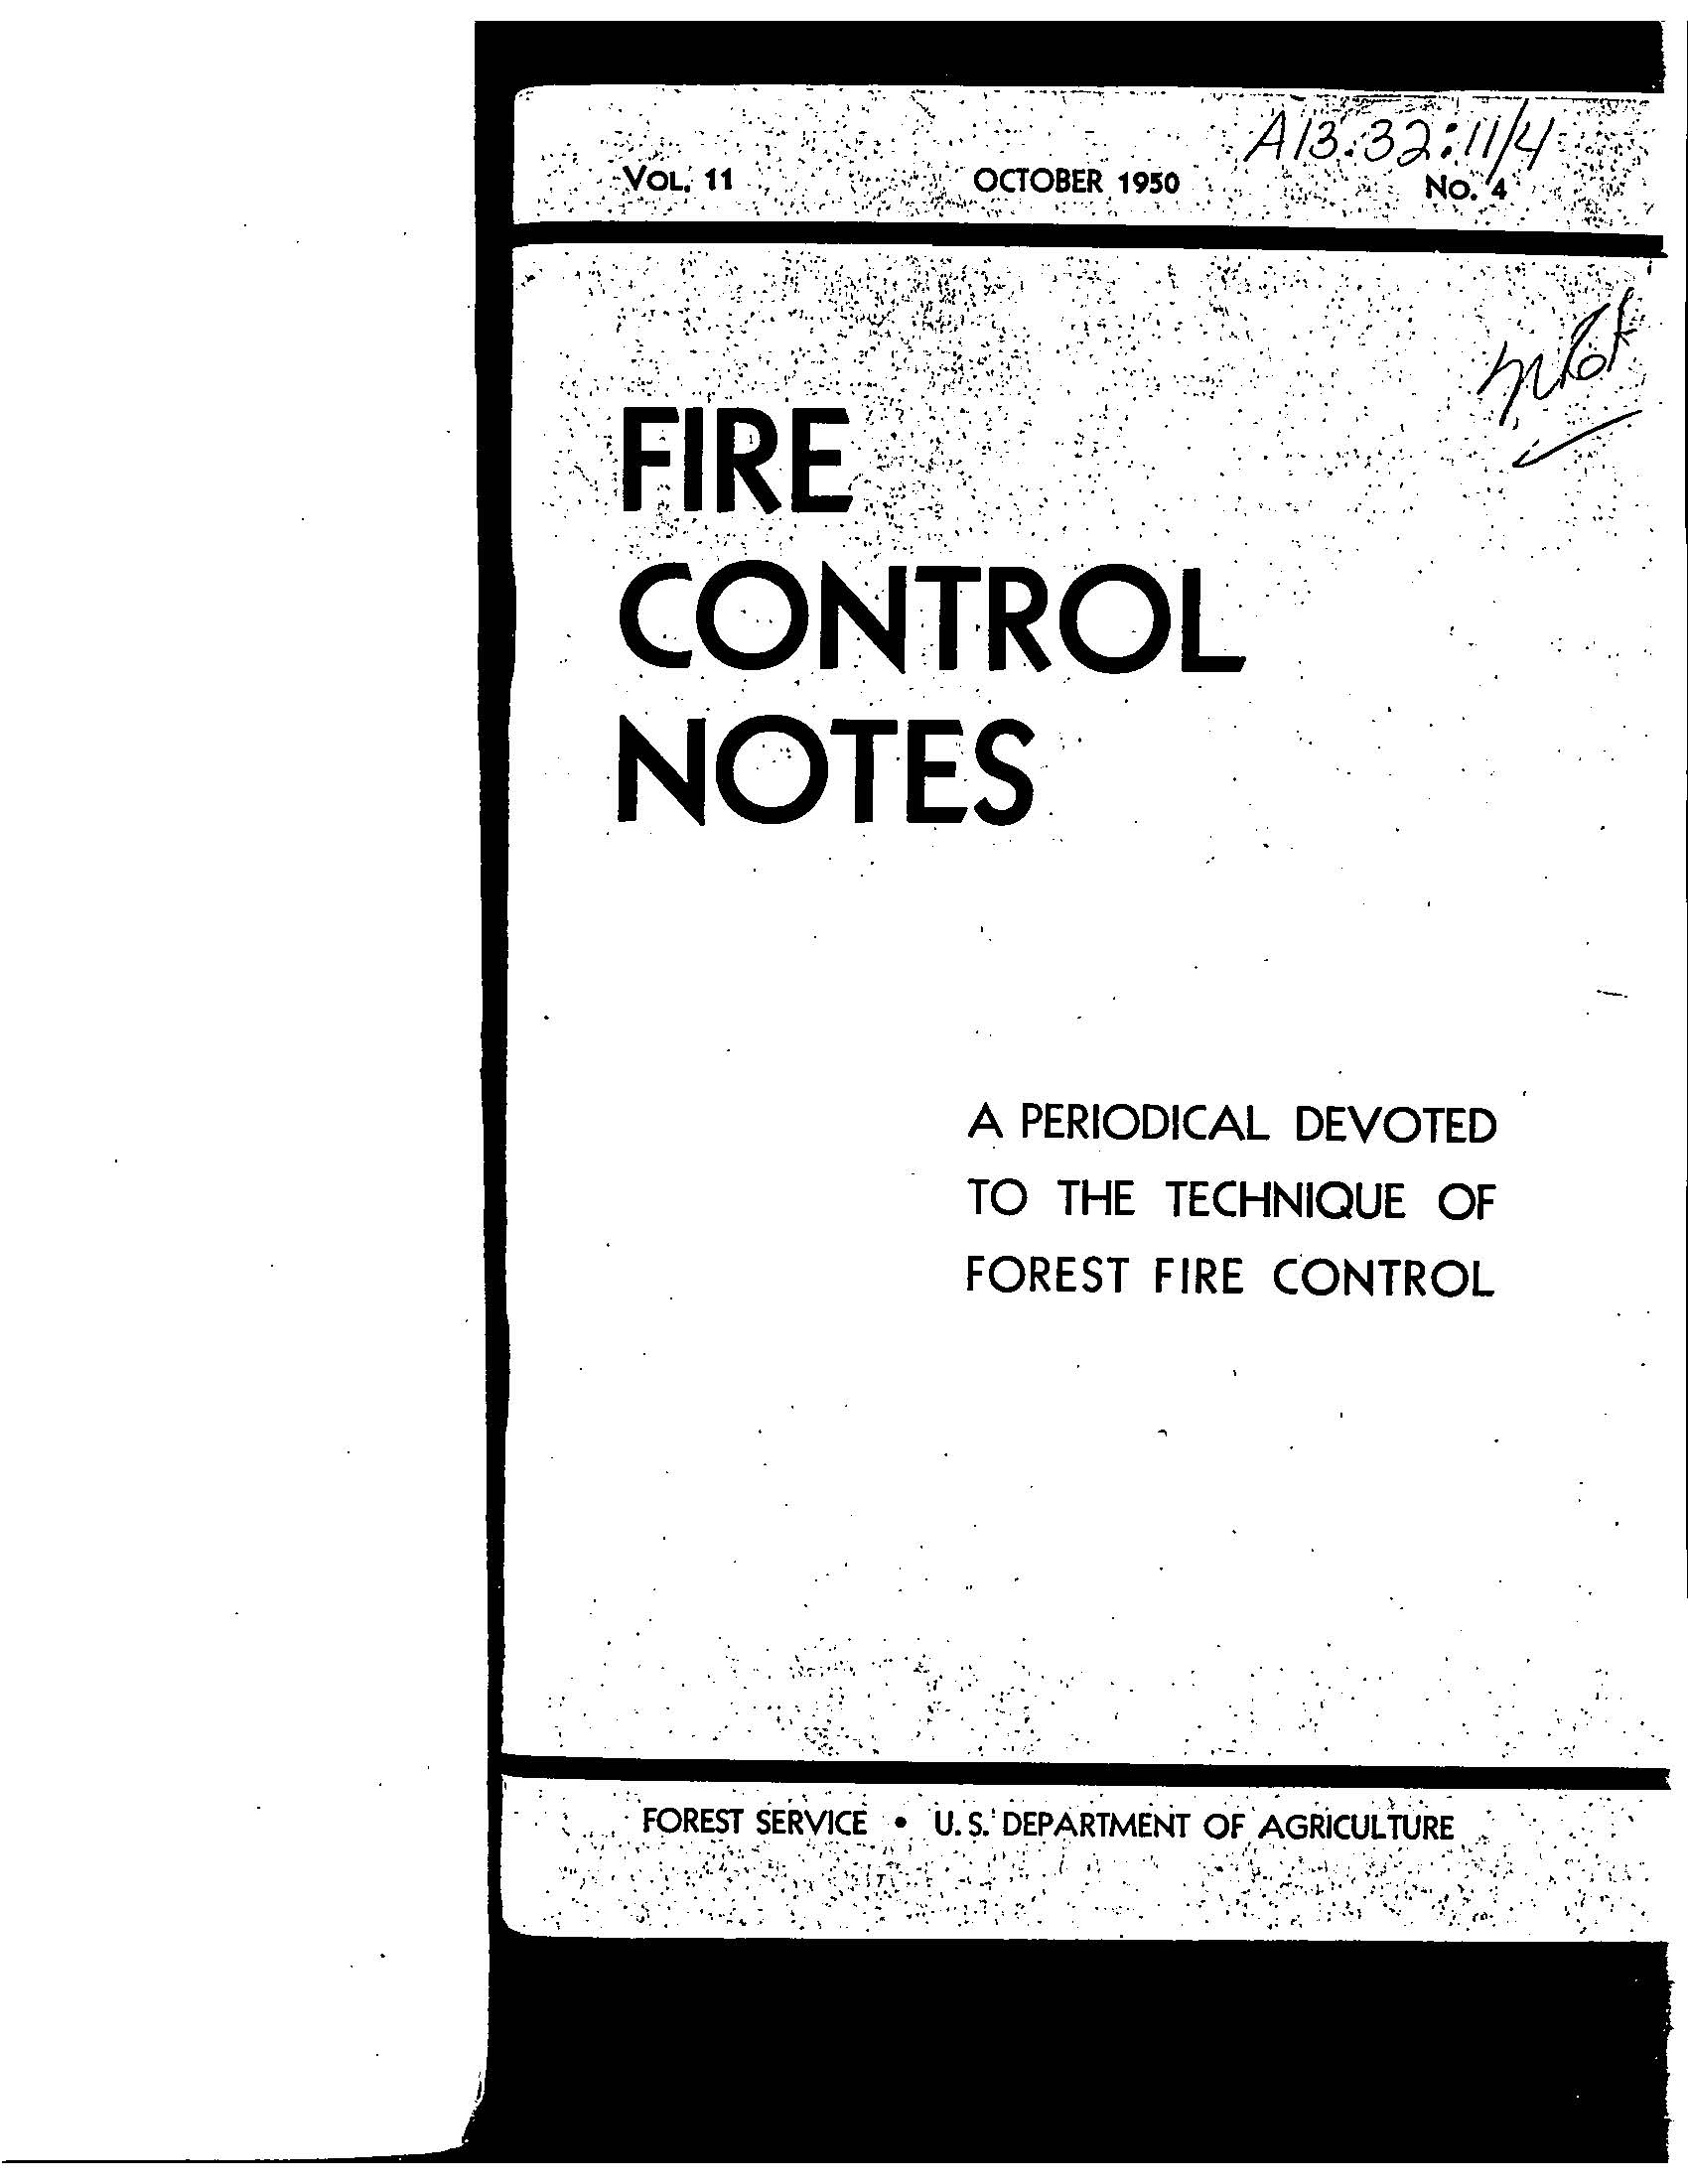 Cover of Fire Management Today Volume 11, Issue 04